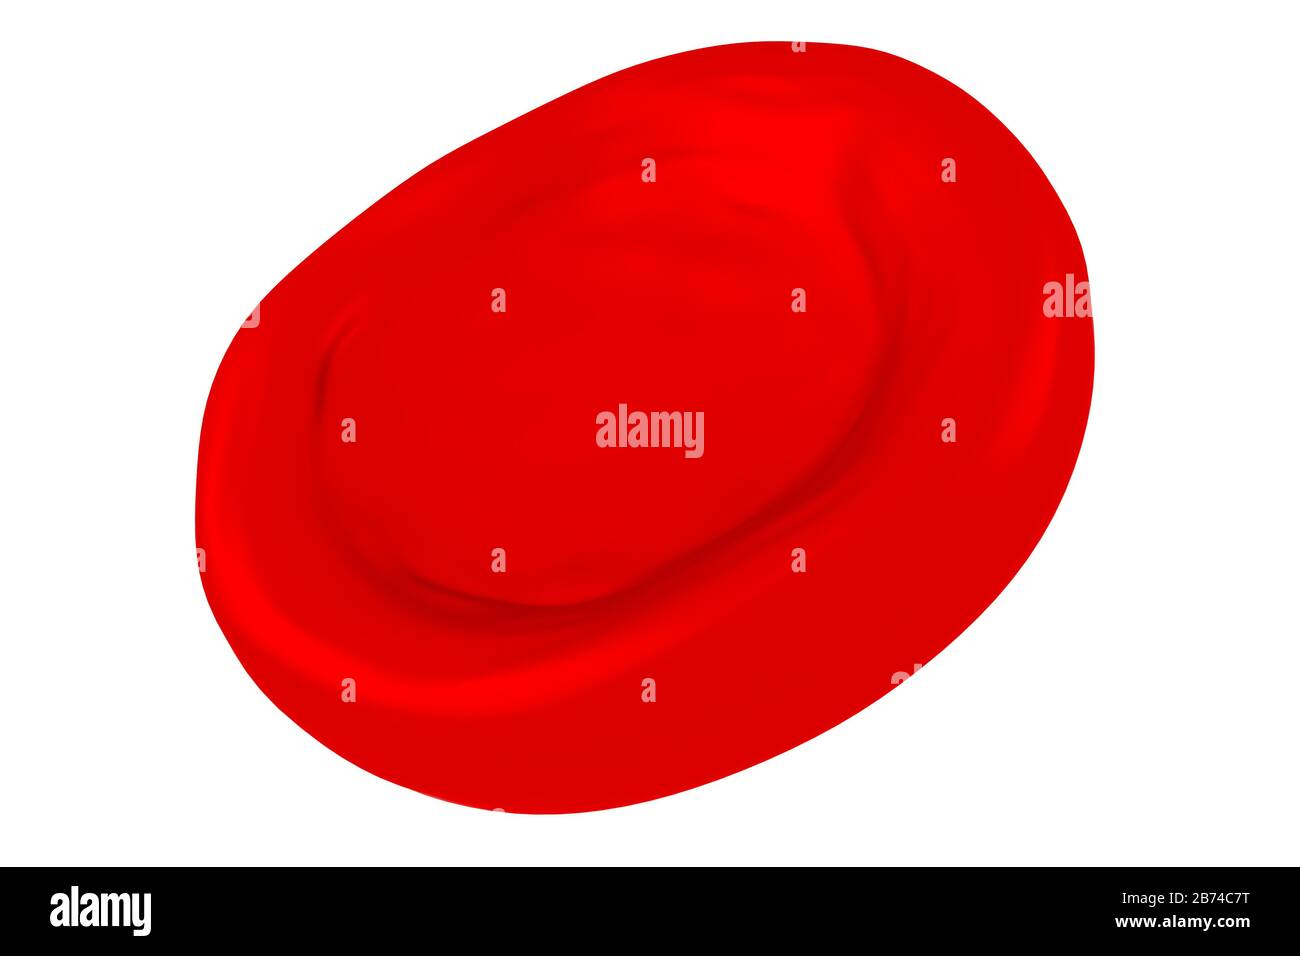 3D red blood cell - isolated on white background Stock Photo